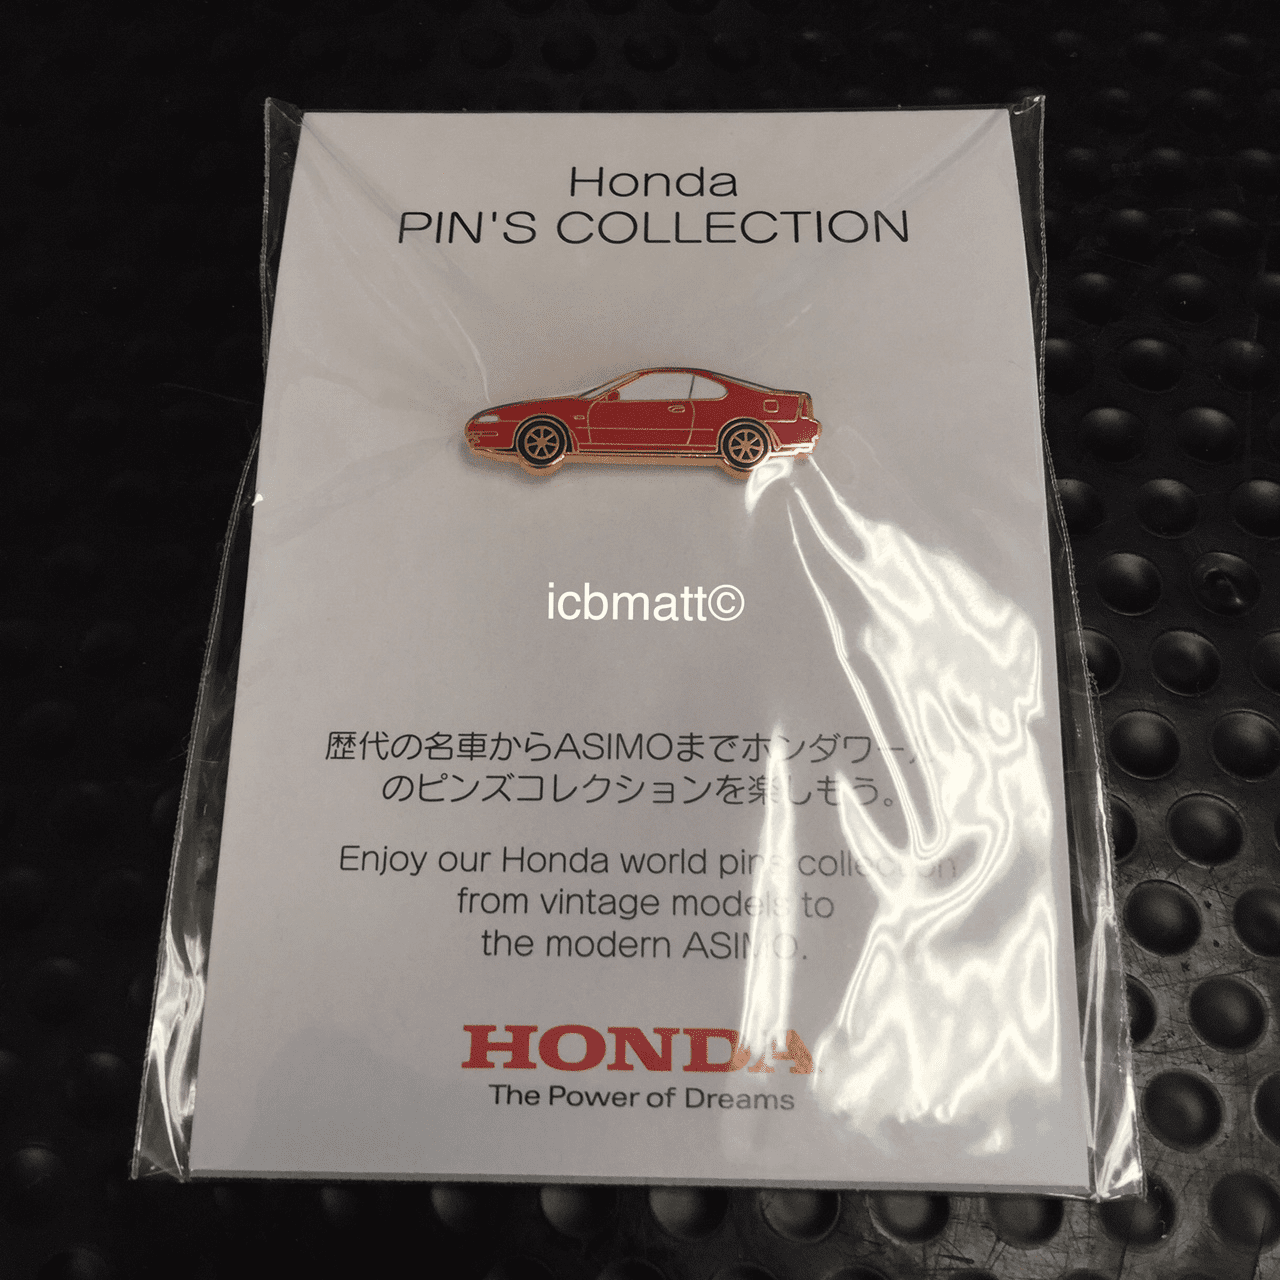 JDM Honda Pins Collection Prelude BB4 Red Pin